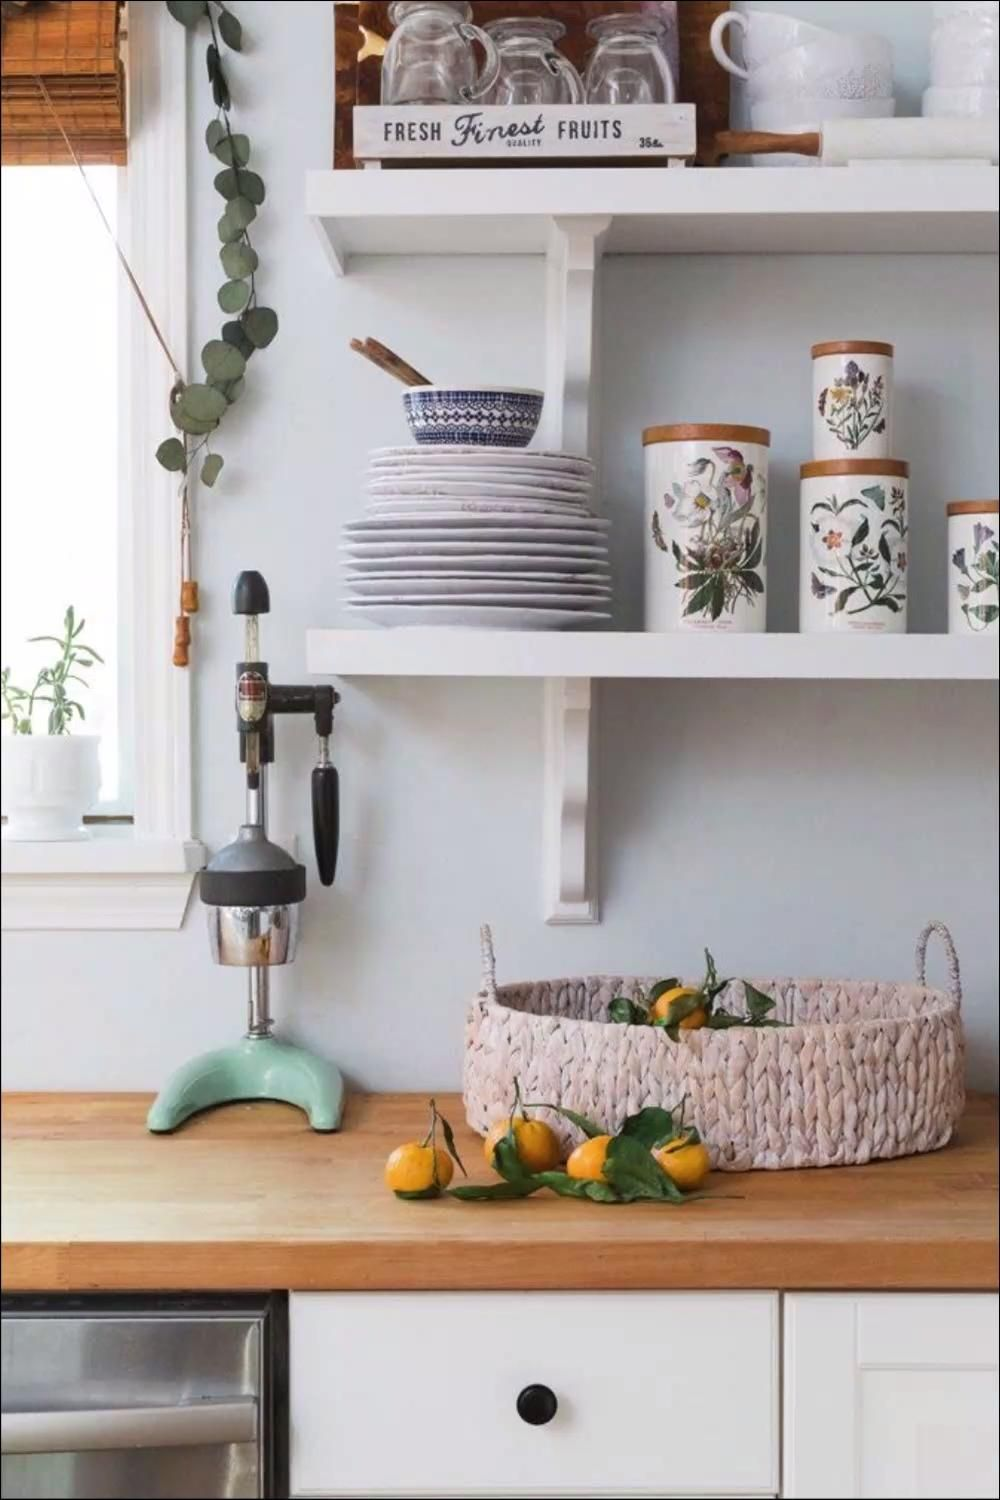 Utilitarian Contemporary Kitchen Floating Shelves Ideas For Best Additional Storage